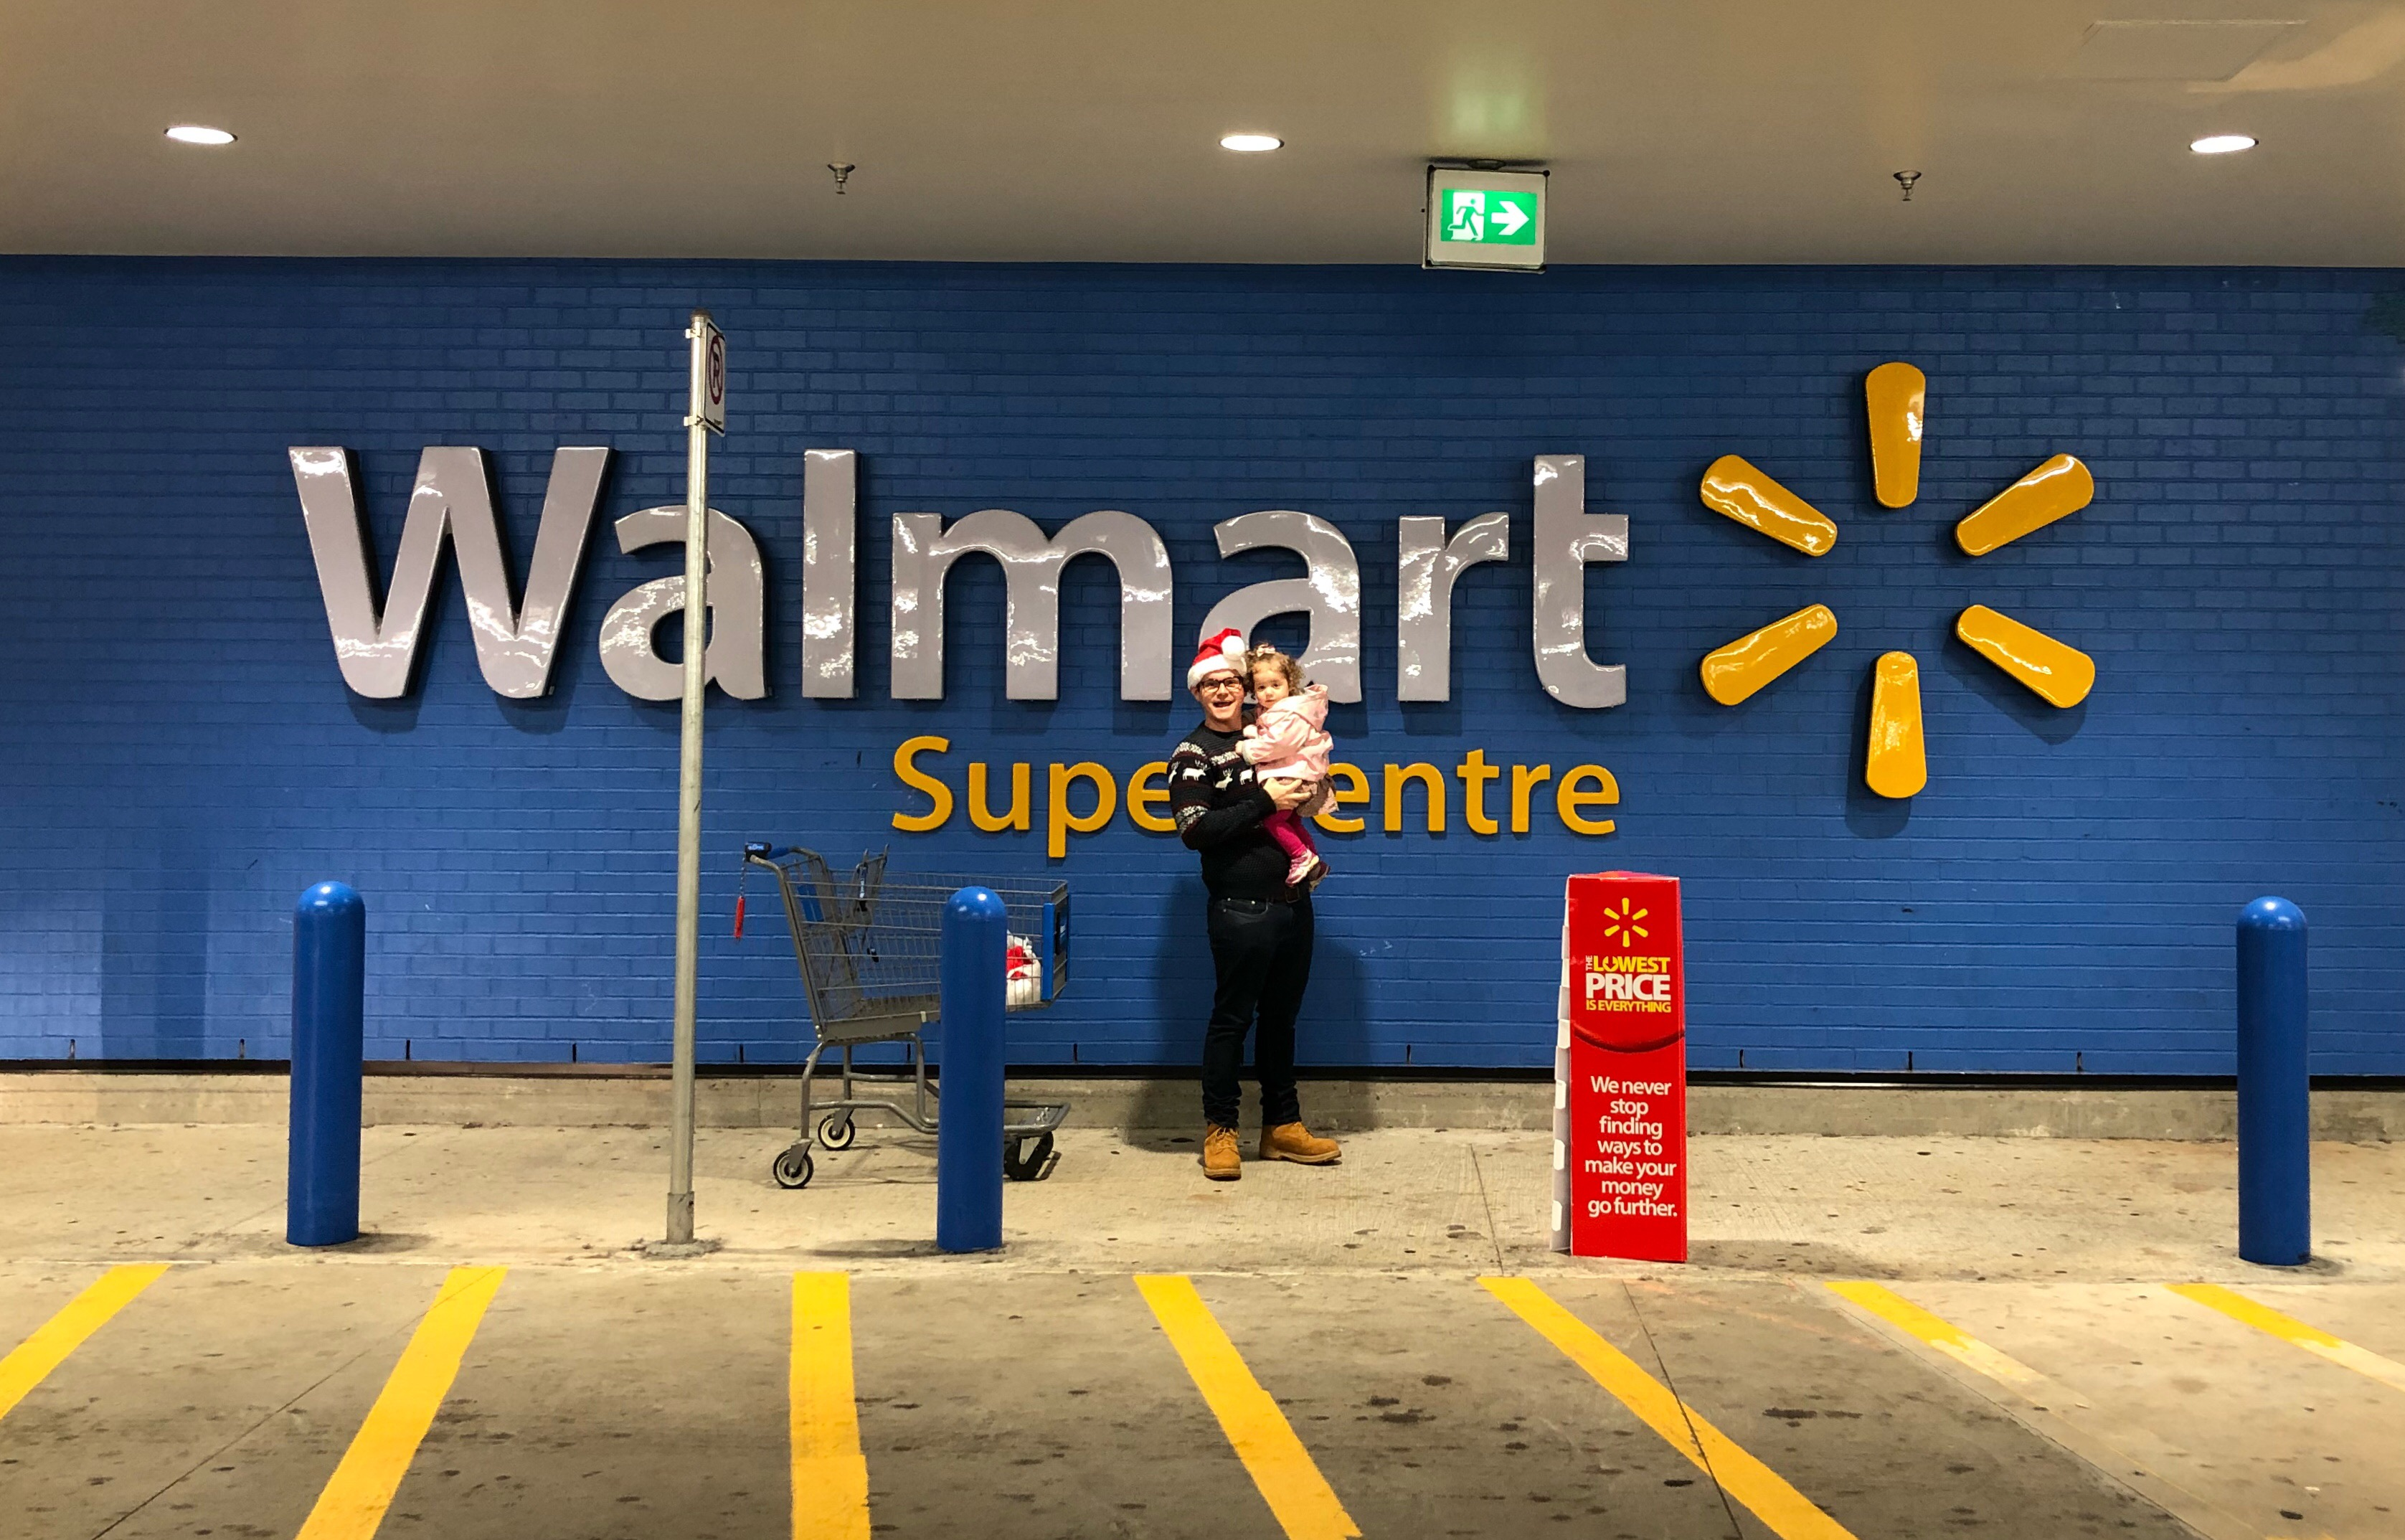 walmart, wal-mart, christmas gifts, cheap gifts, gift ideas, dad blog, parenting blog, parenting blogger, canada, walmart blog, blogs about walmart, vancouver blog, vancouver blogger